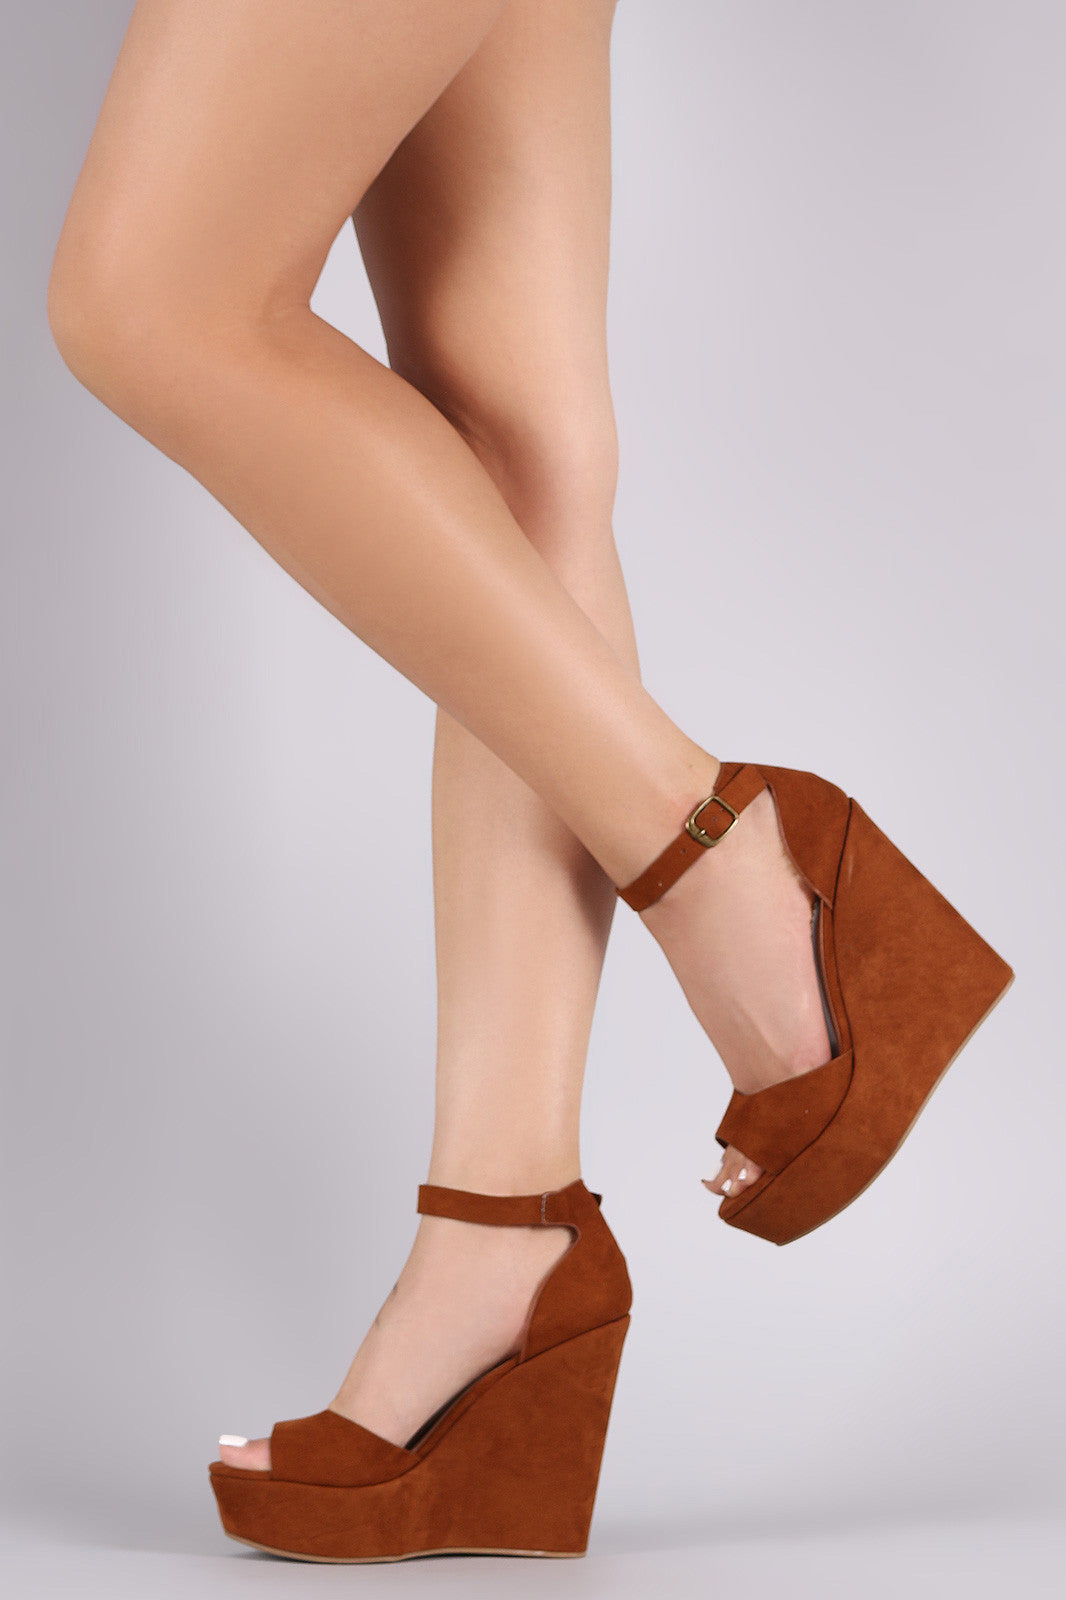 Bamboo Suede One Band Platform Wedge - Thick 'N' Curvy Shop - 6